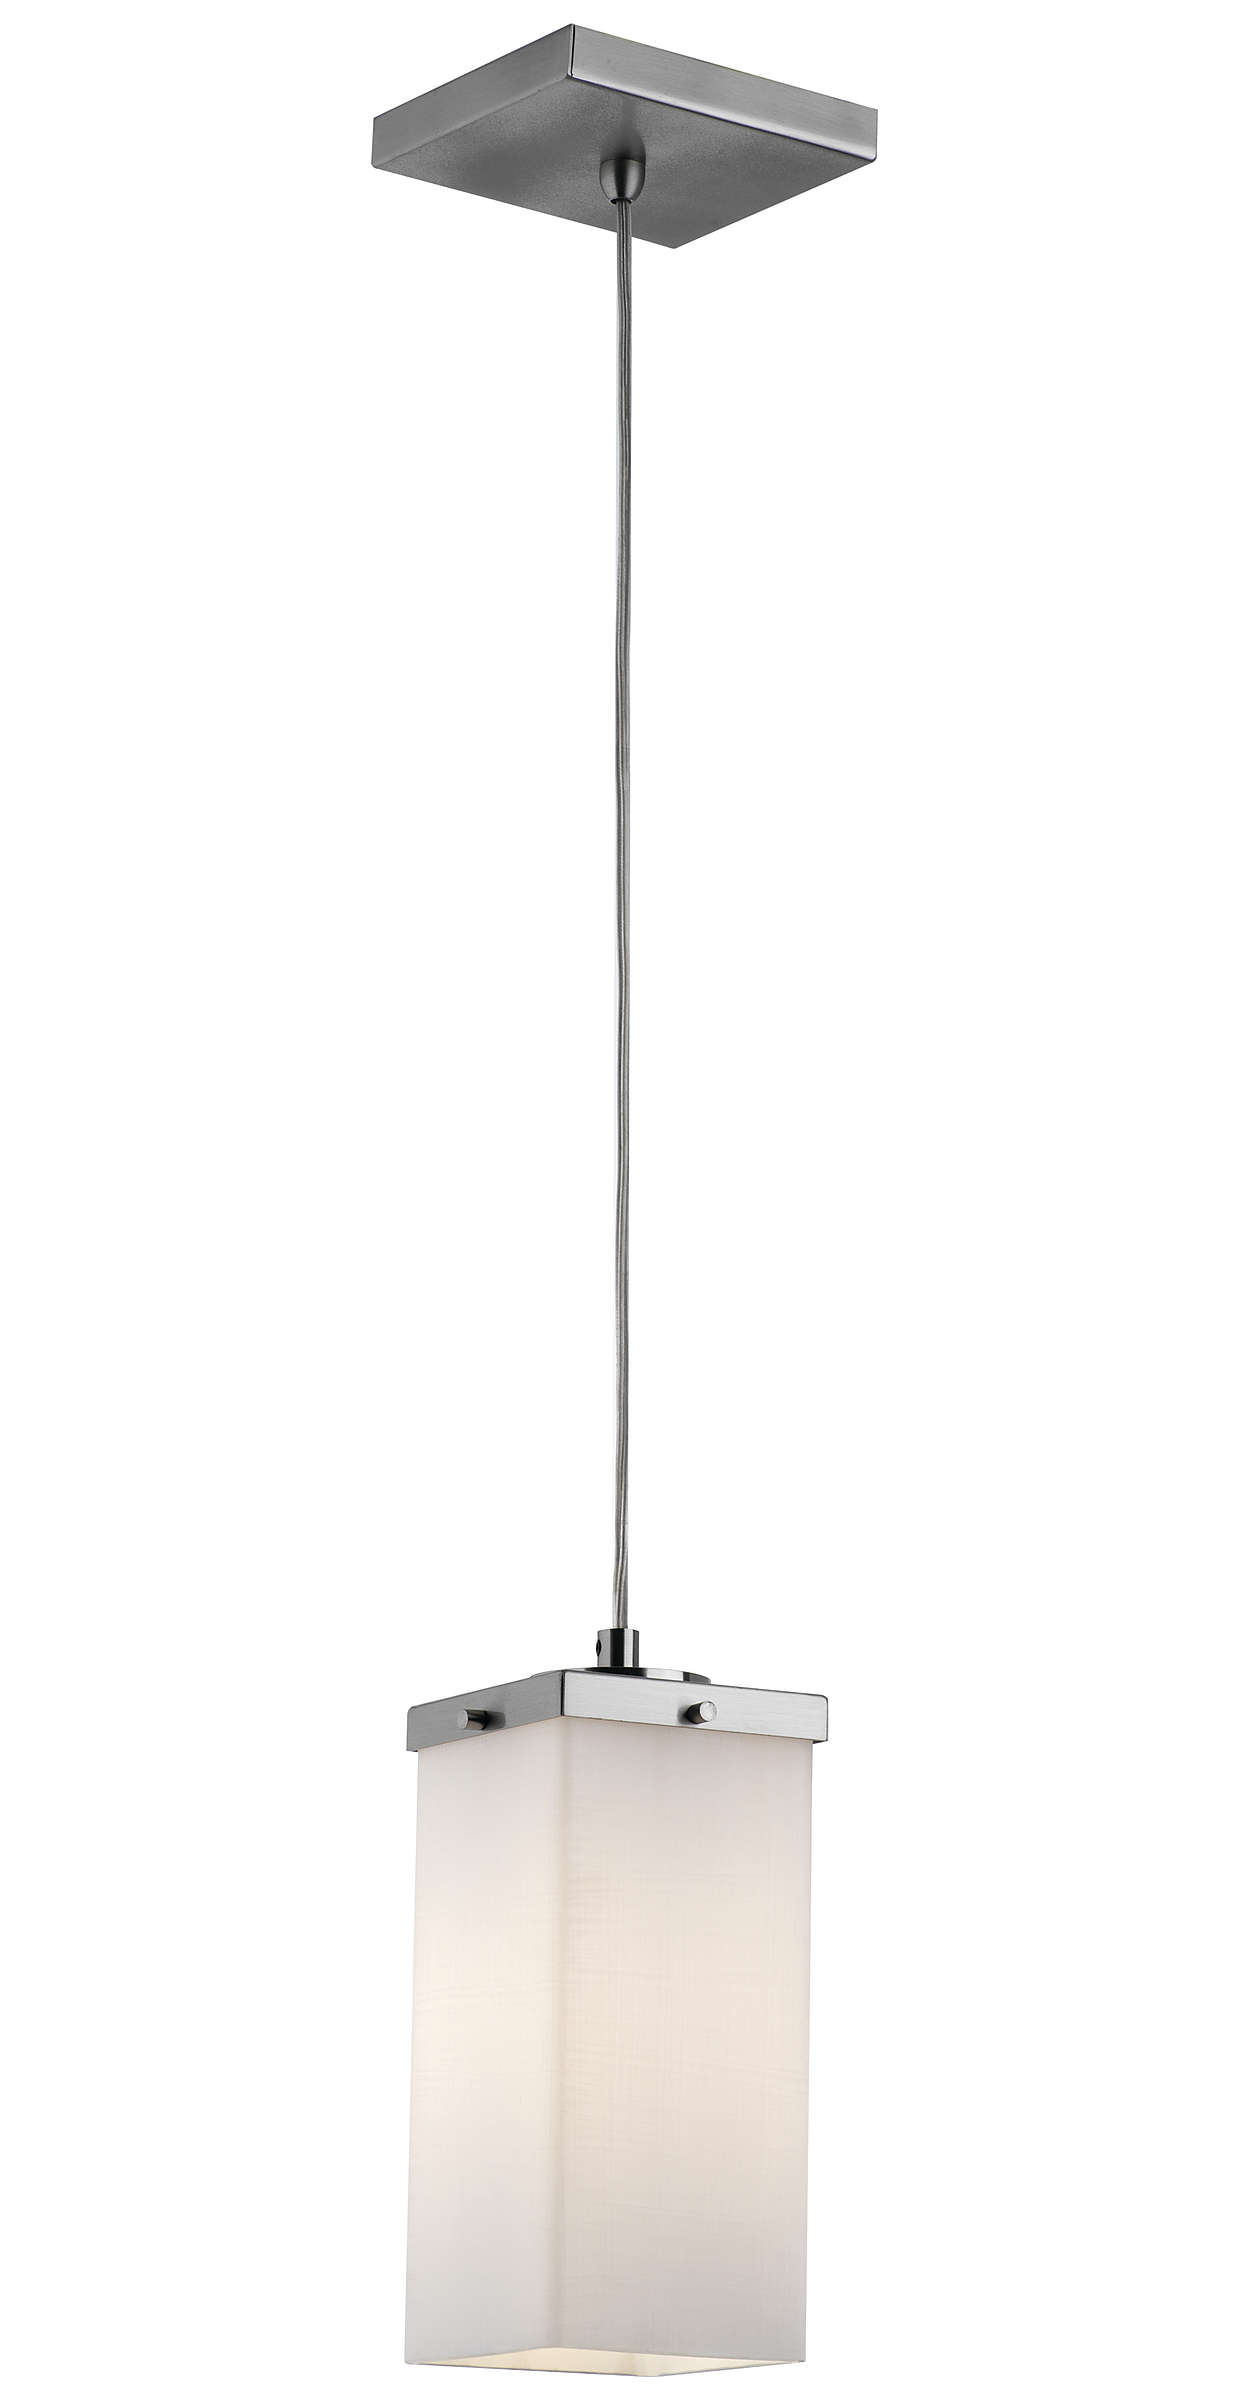 Casa 1-light Pendant in Satin Nickel finish